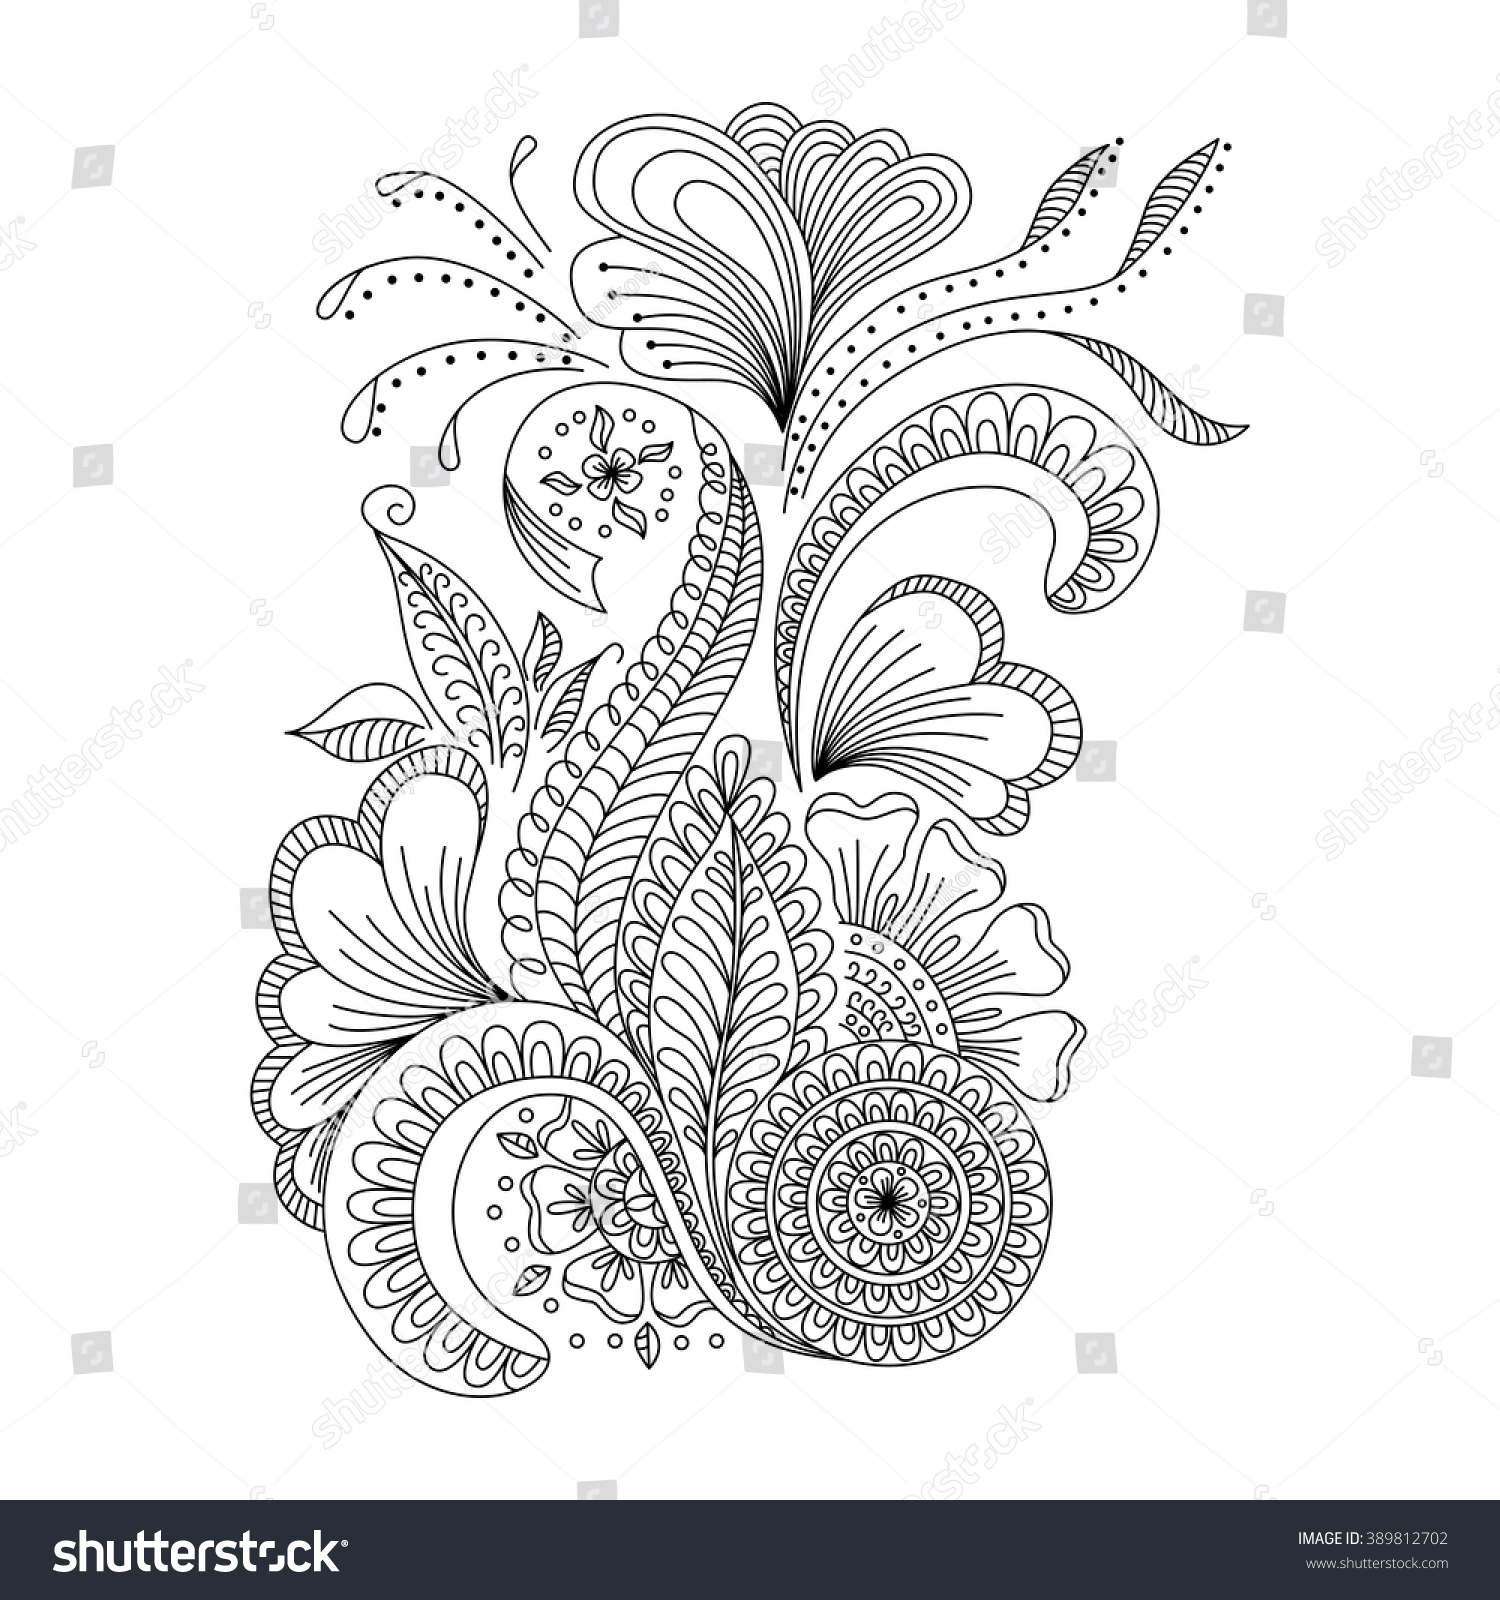 Cover page designs for school projects note book cover page design - Hand Drawn Floral Background In Doodle Or Henna Style Design For Cover Bag